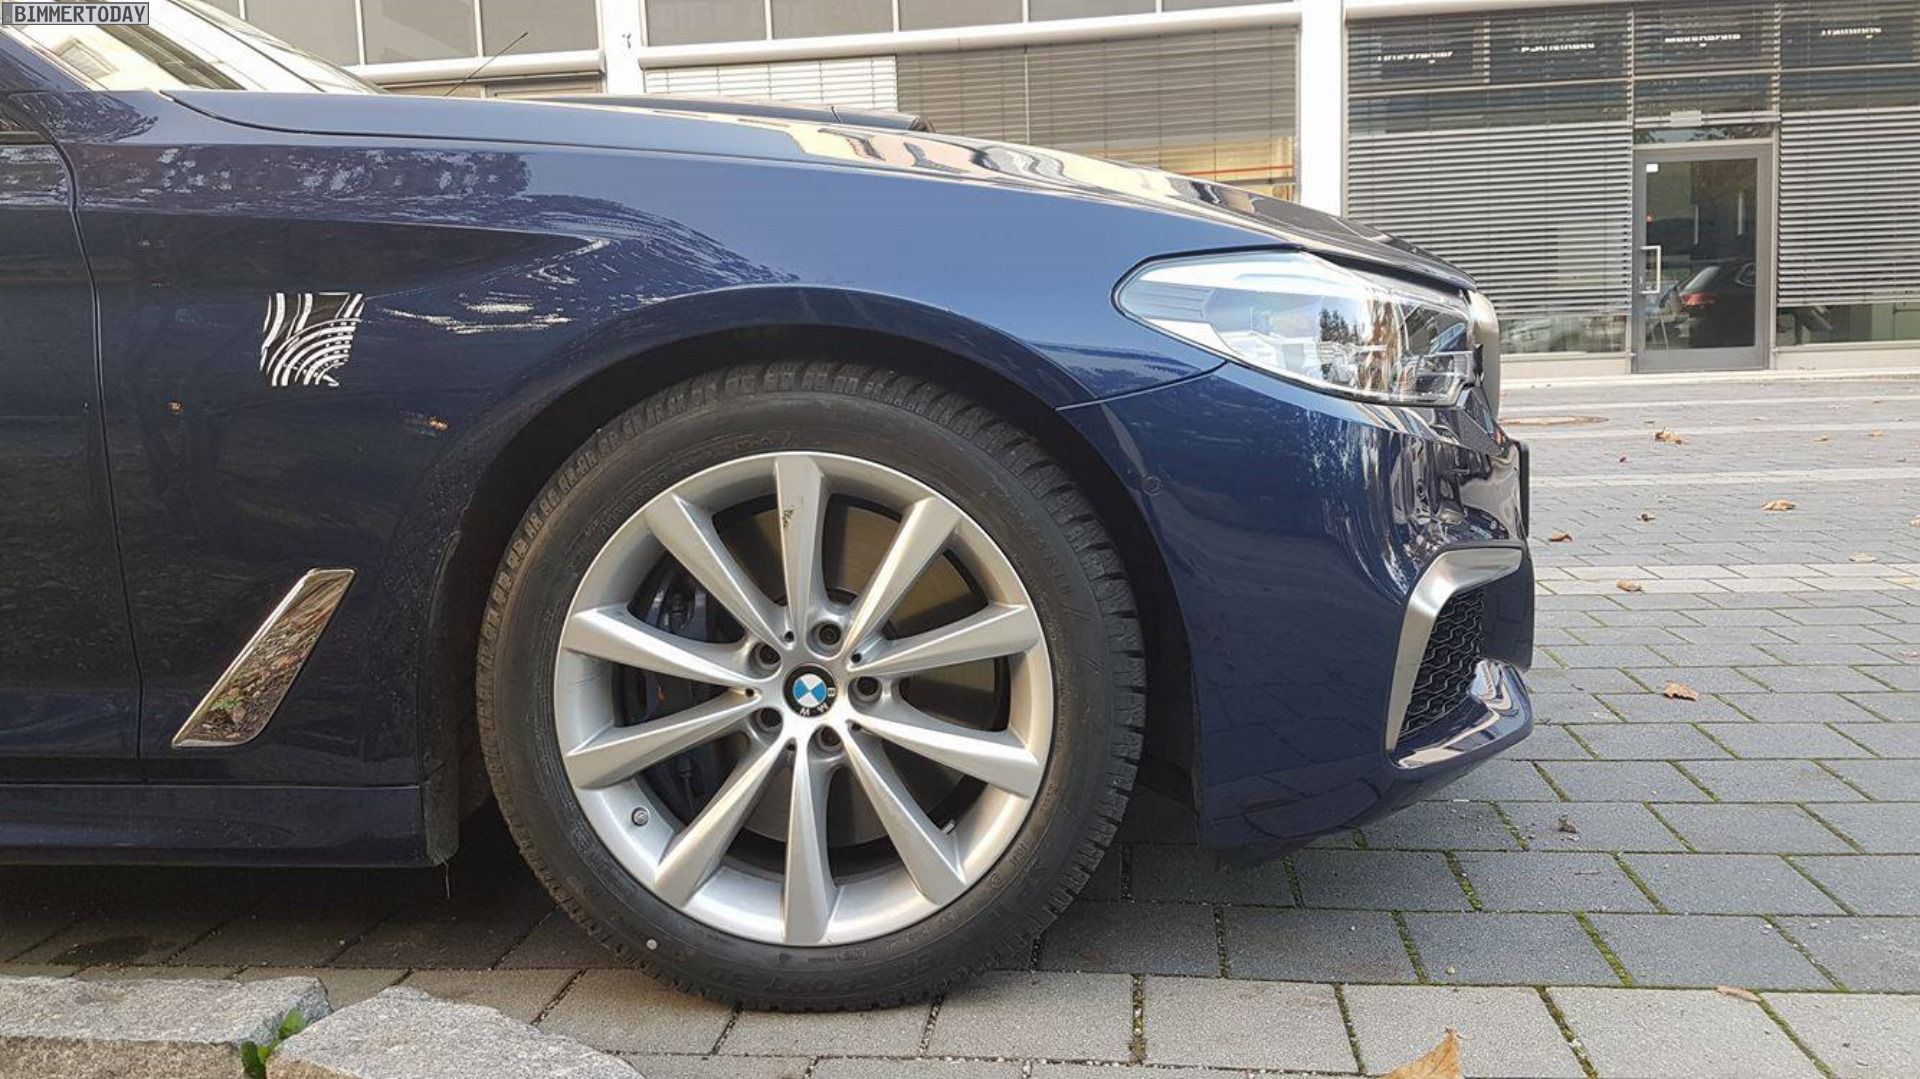 2016 - [BMW] Série 5 Berline & Touring [G30/G31] - Page 26 Attachment